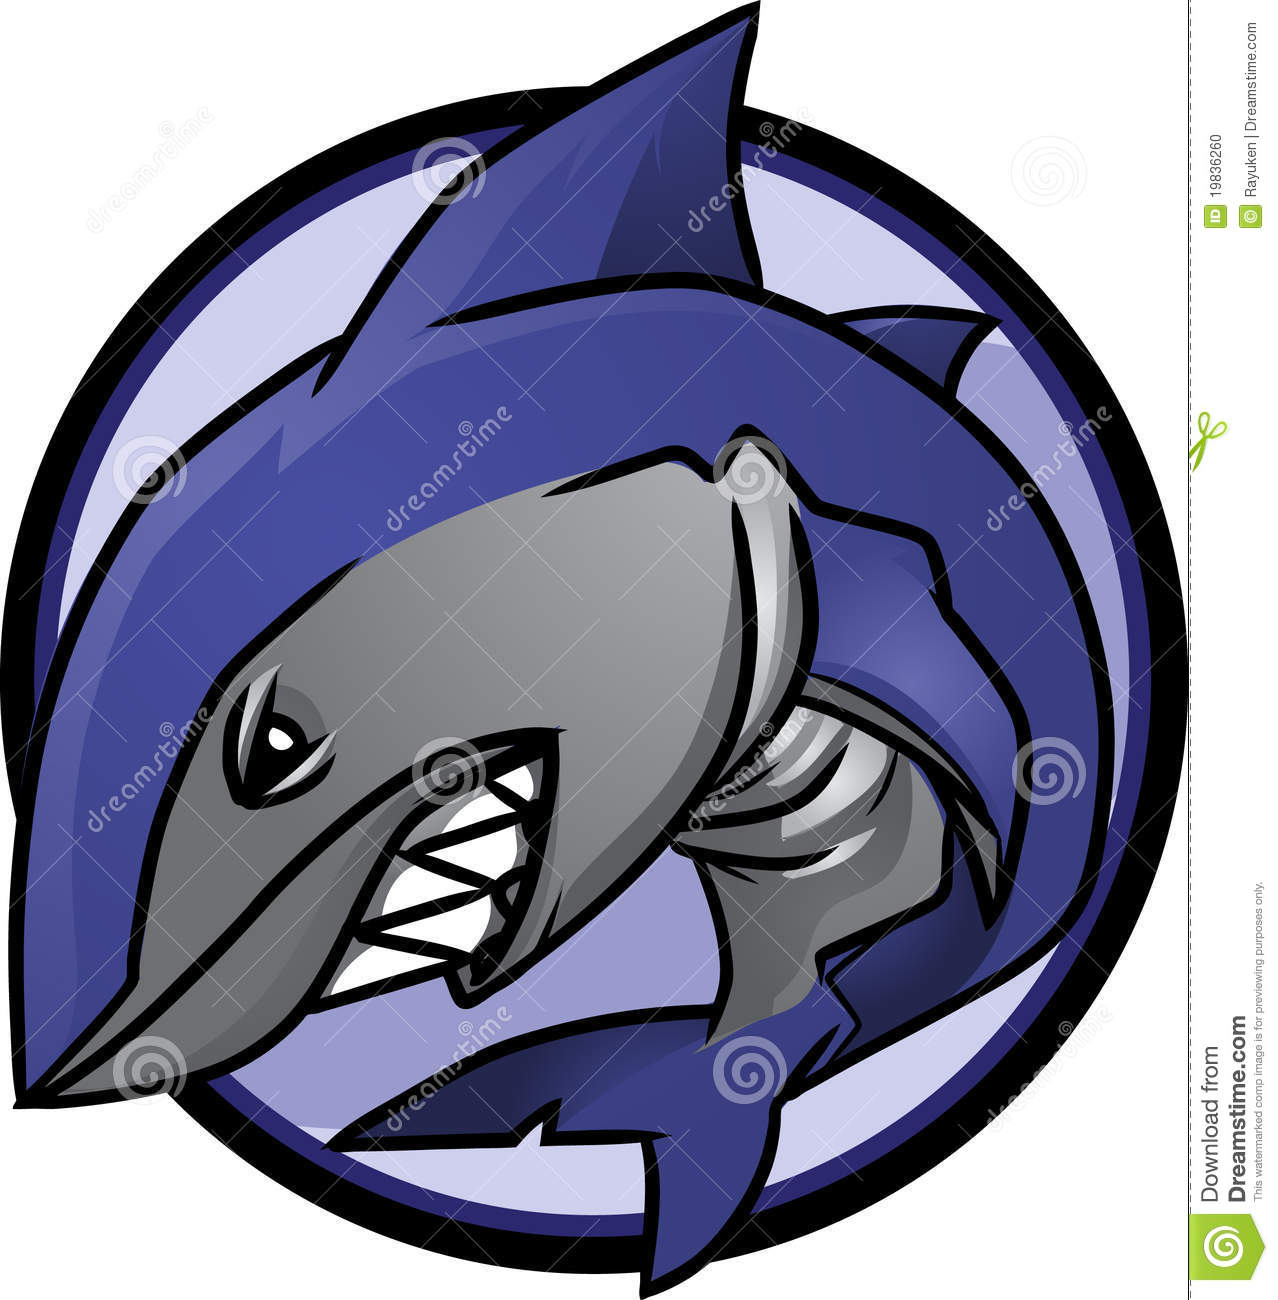 Shark Vector Logo Royalty Free Stock Photo - Image: 14145725